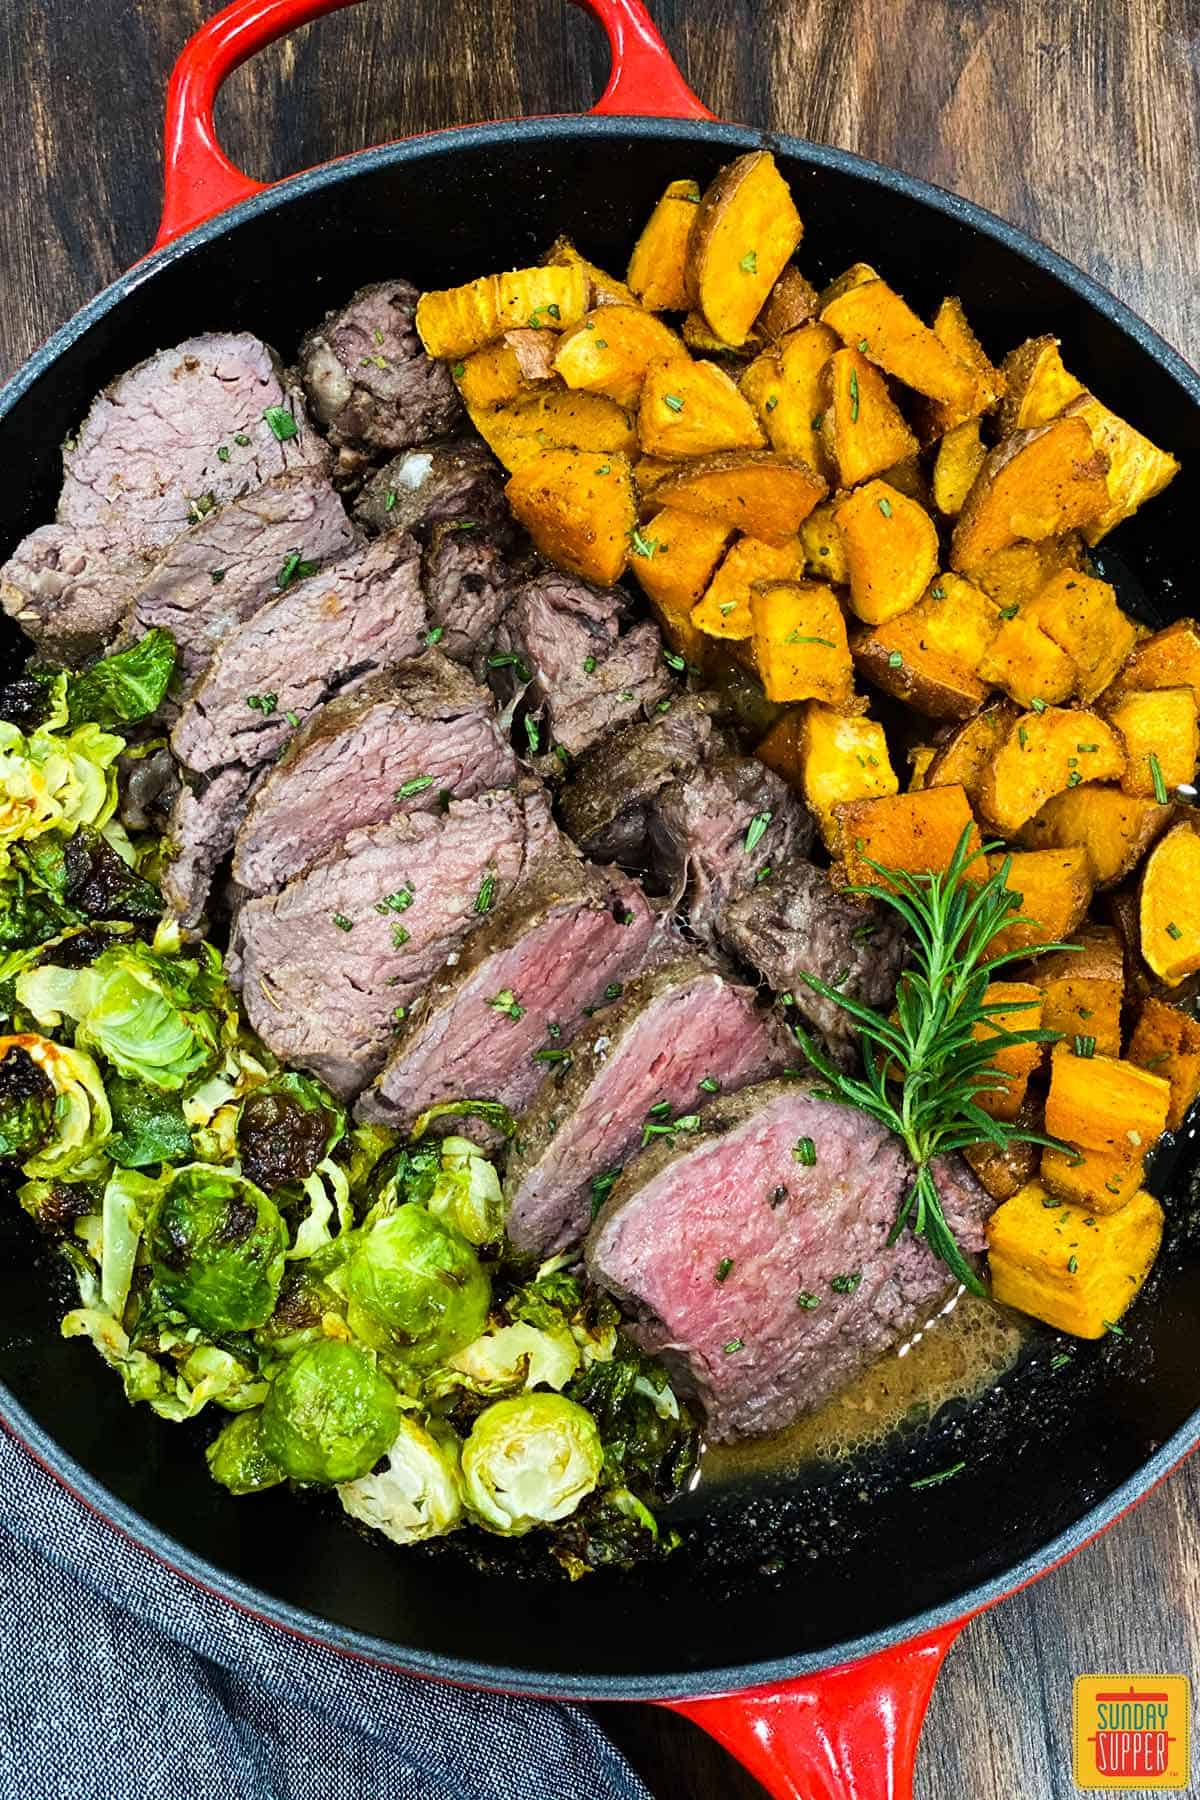 Overhead shot of sous vide beef tenderloin in a skillet with sweet potatoes and brussels sprouts